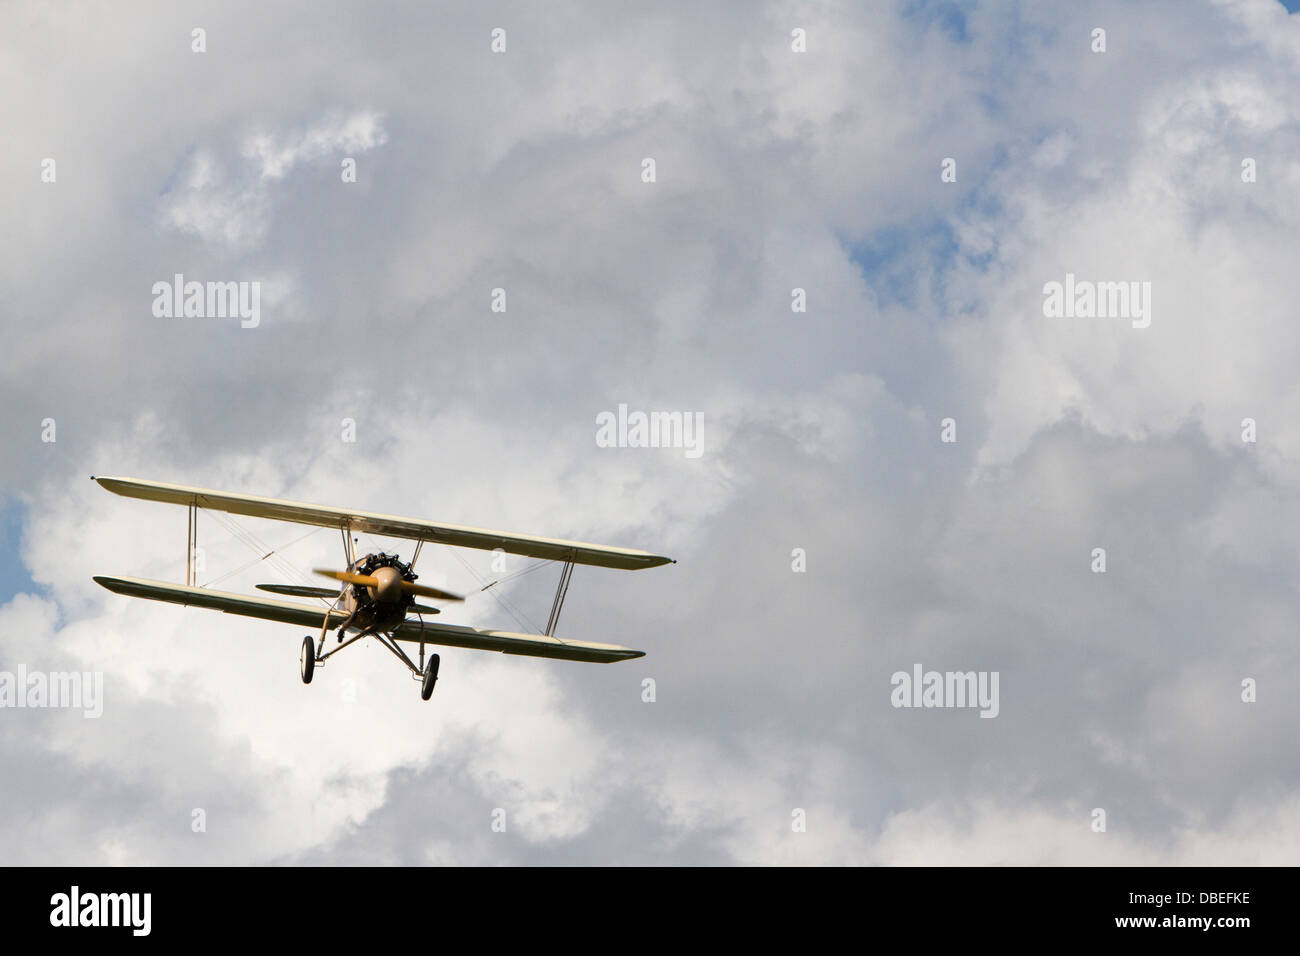 Biplane in flight against a blue sky with cumulus clouds. - Stock Image